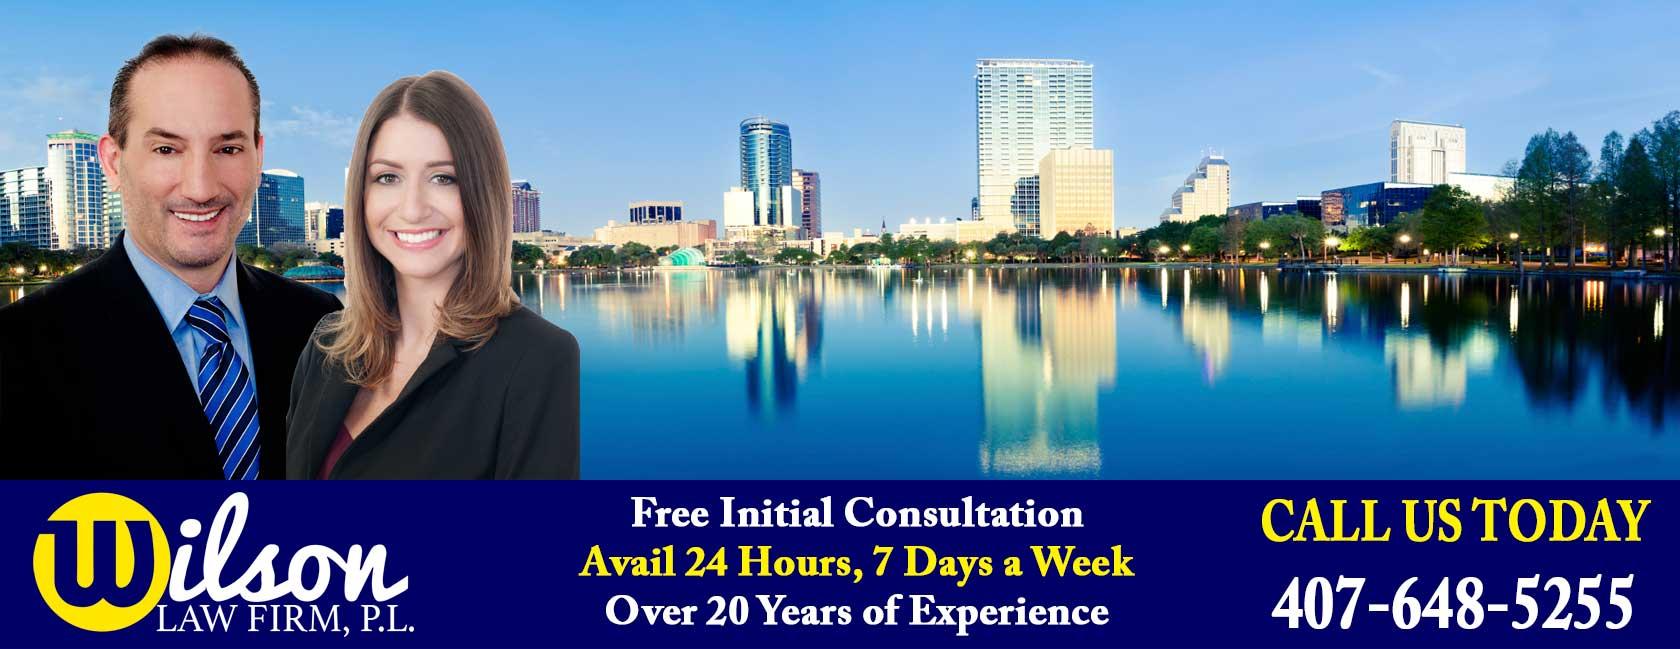 Orlando Divorce Attorney Orlando Criminal Lawyer Orange County Divorce Lawyer Orange County Criminal Attorney